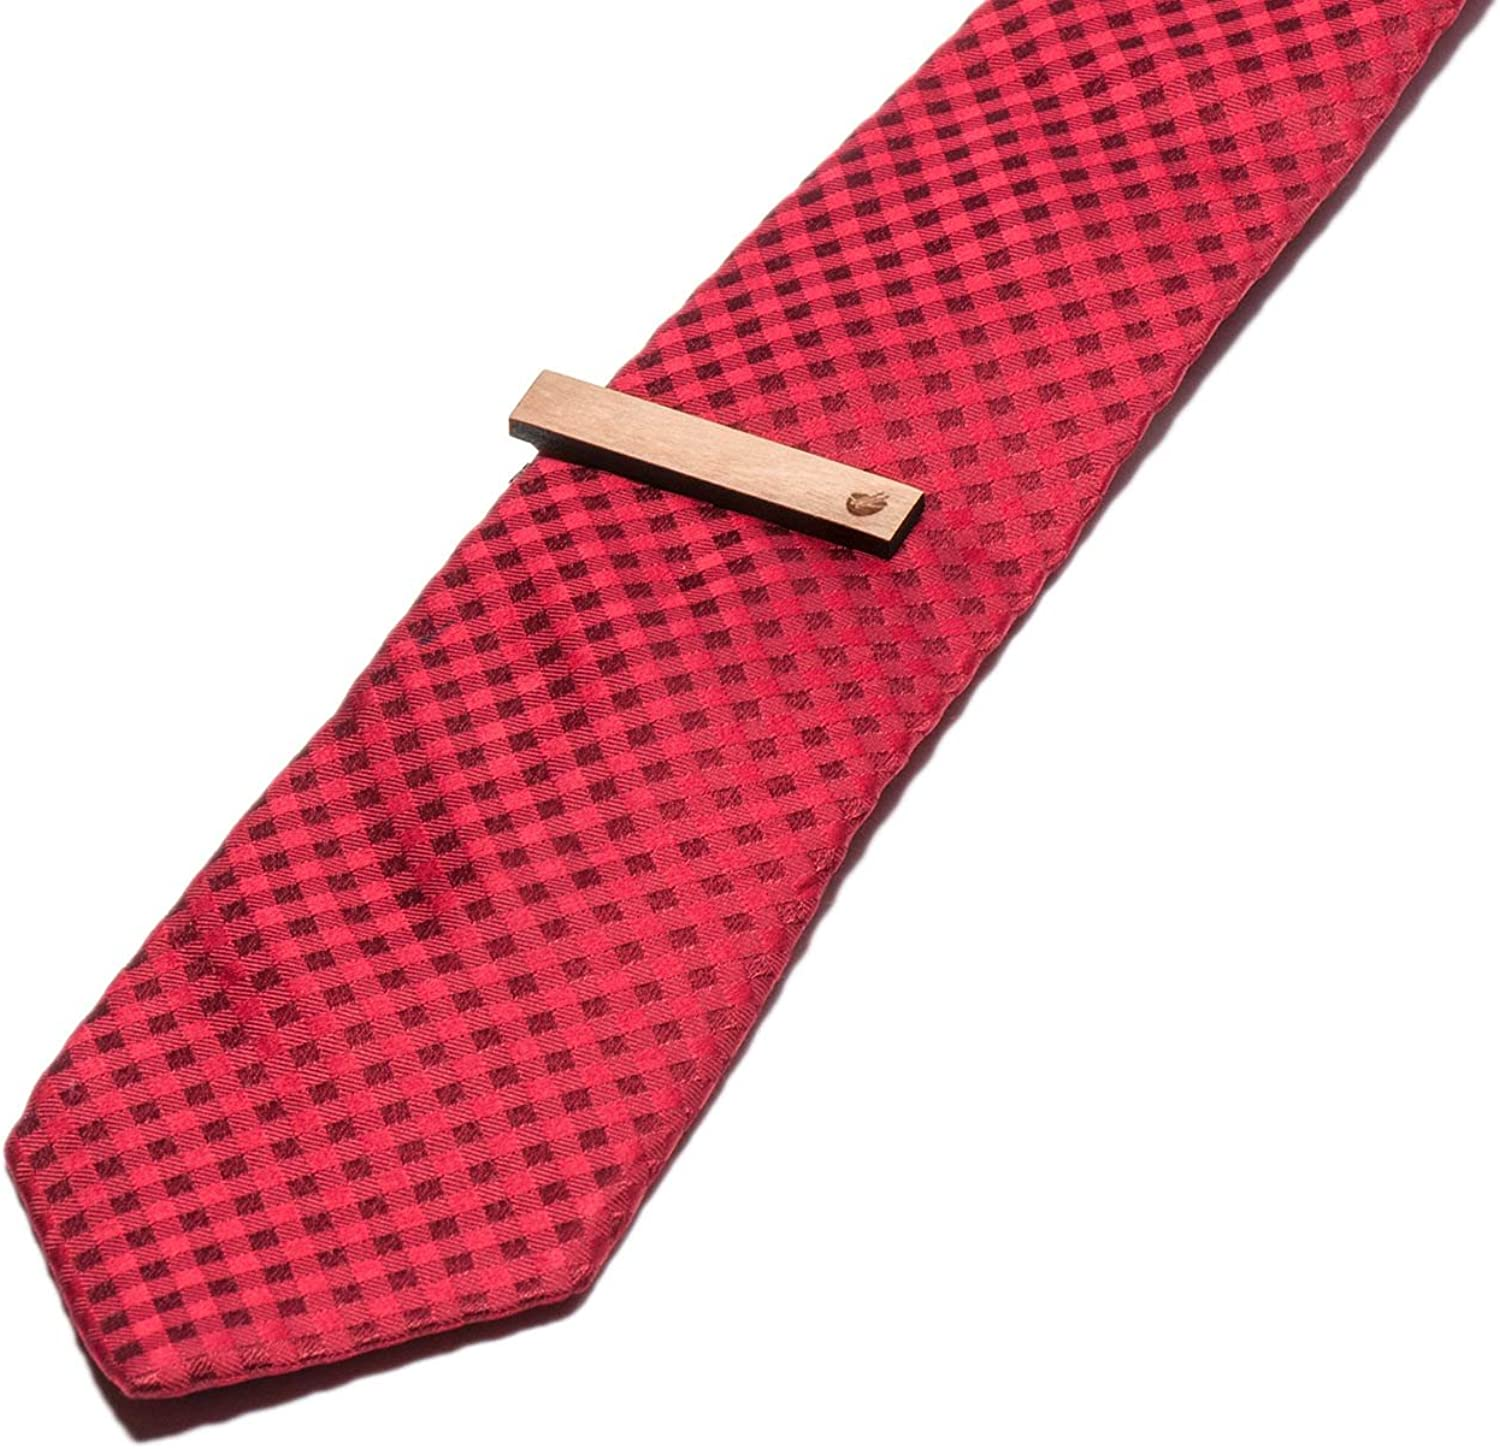 Wooden Accessories Company Wooden Tie Clips with Laser Engraved Bowl and Chopsticks Design Cherry Wood Tie Bar Engraved in The USA